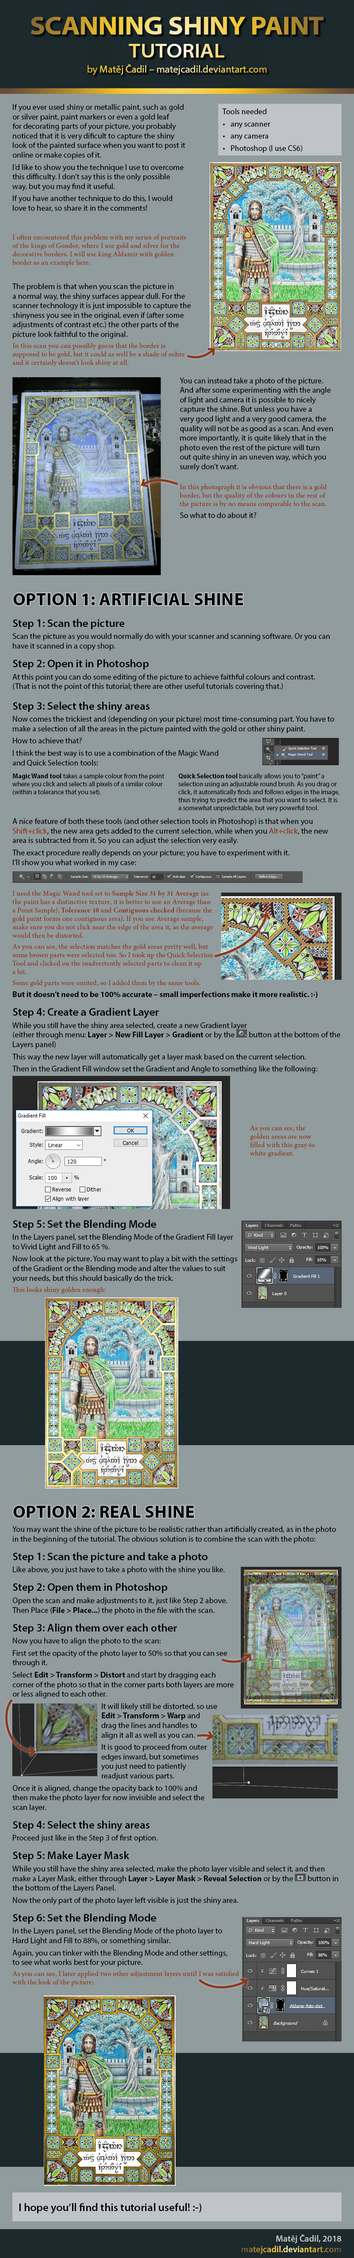 Tutorial - Scanning Shiny Paint by MatejCadil